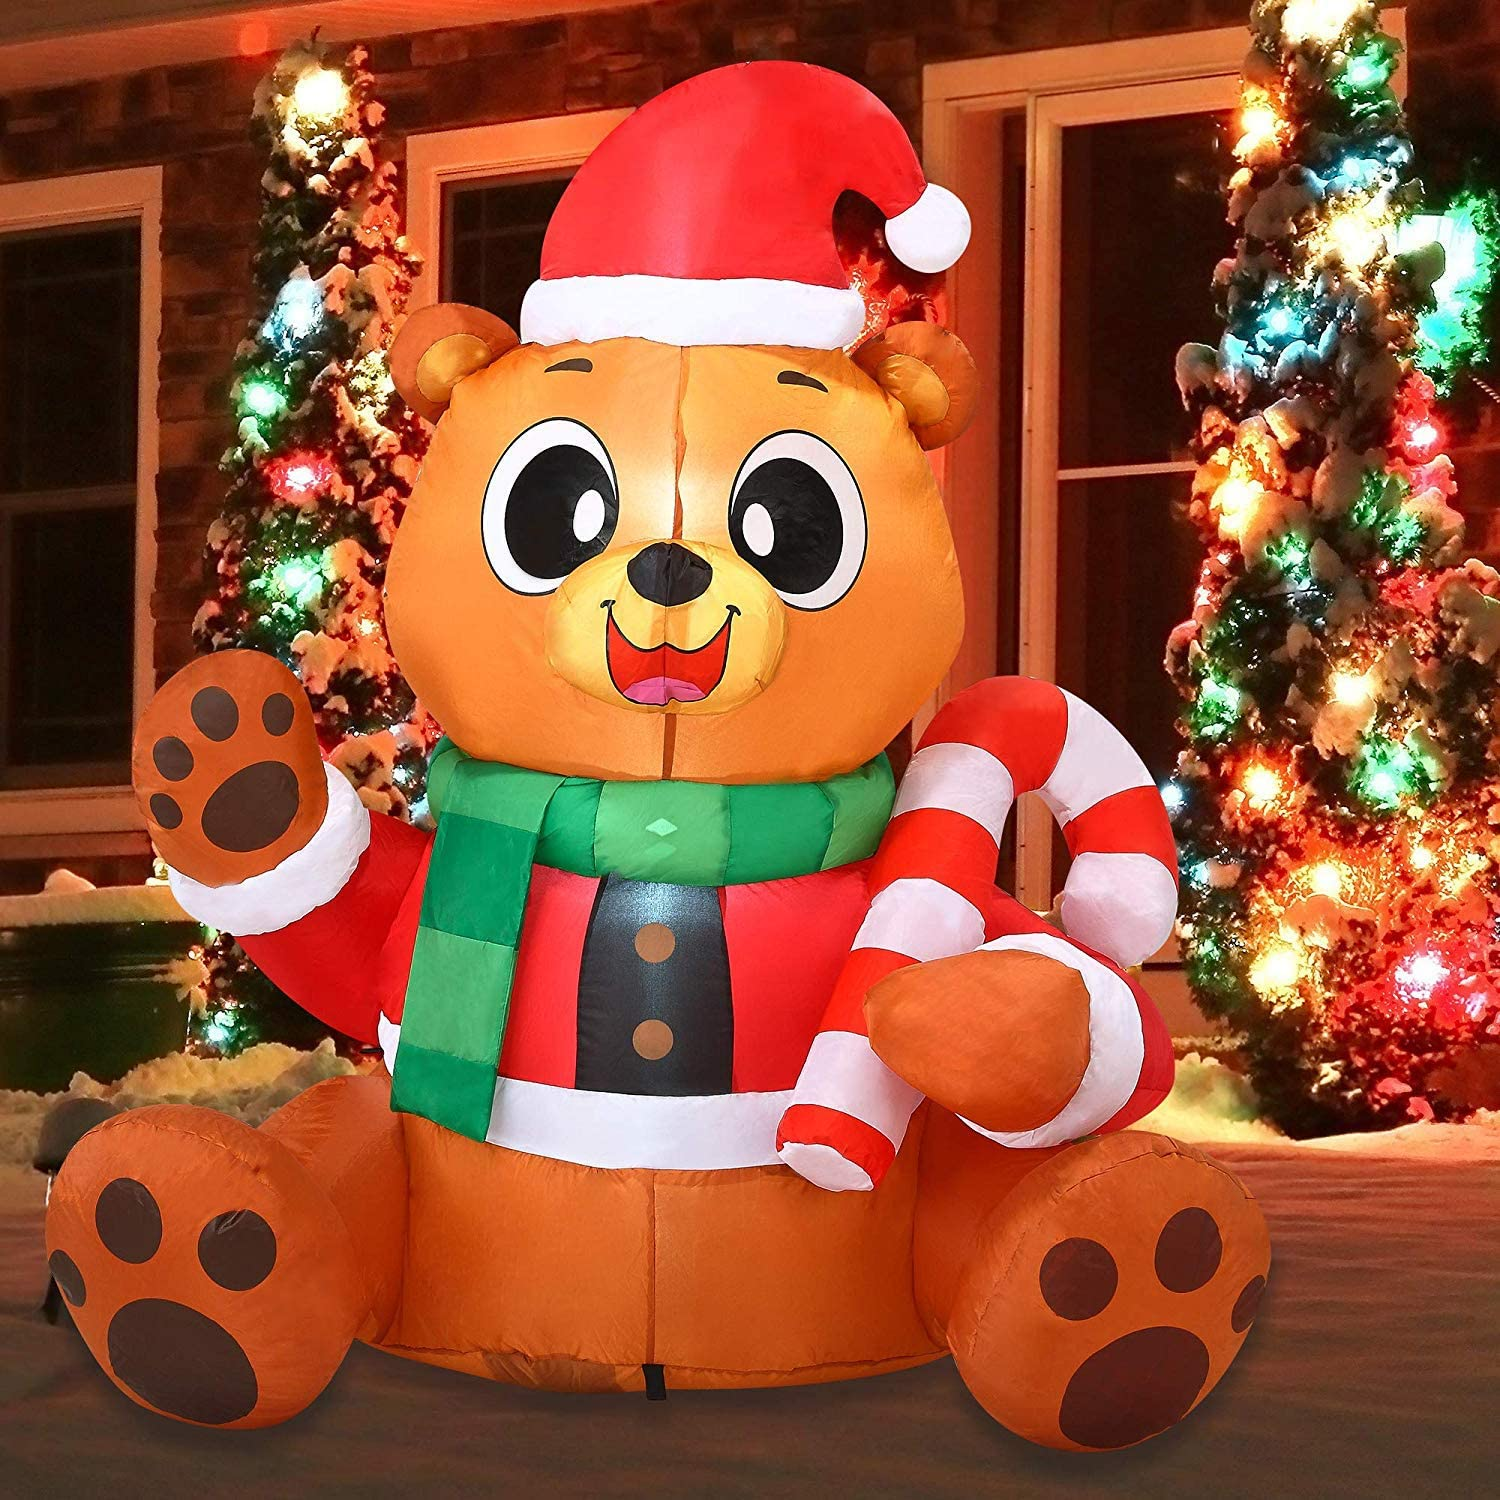 Joiedomi Christmas Inflatable Decoration 5 FT Inflatable Christmas Teddy Bear Inflatable with Build-in LEDs Blow Up for Christmas, Party Indoor, Outdoor, Yard, Garden, Lawn Décor.